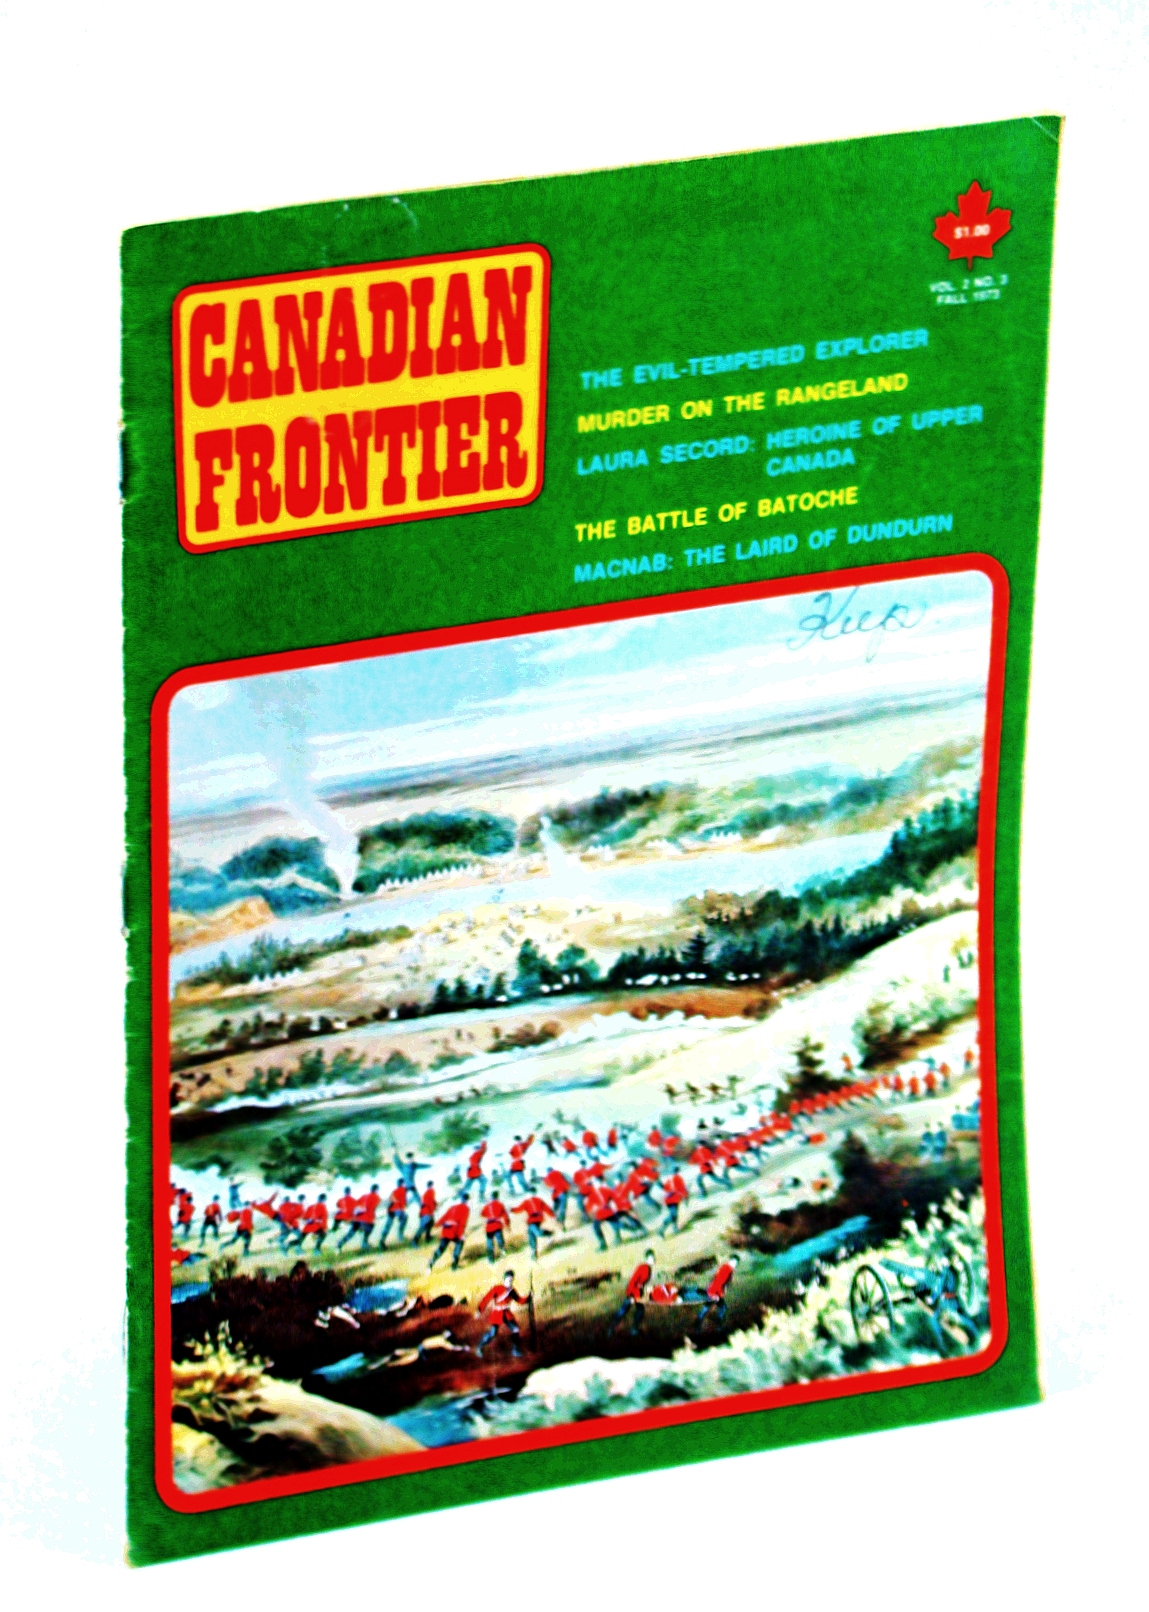 Image for Canadian Frontier Magazine Volume 2 No. 3 Fall 1973